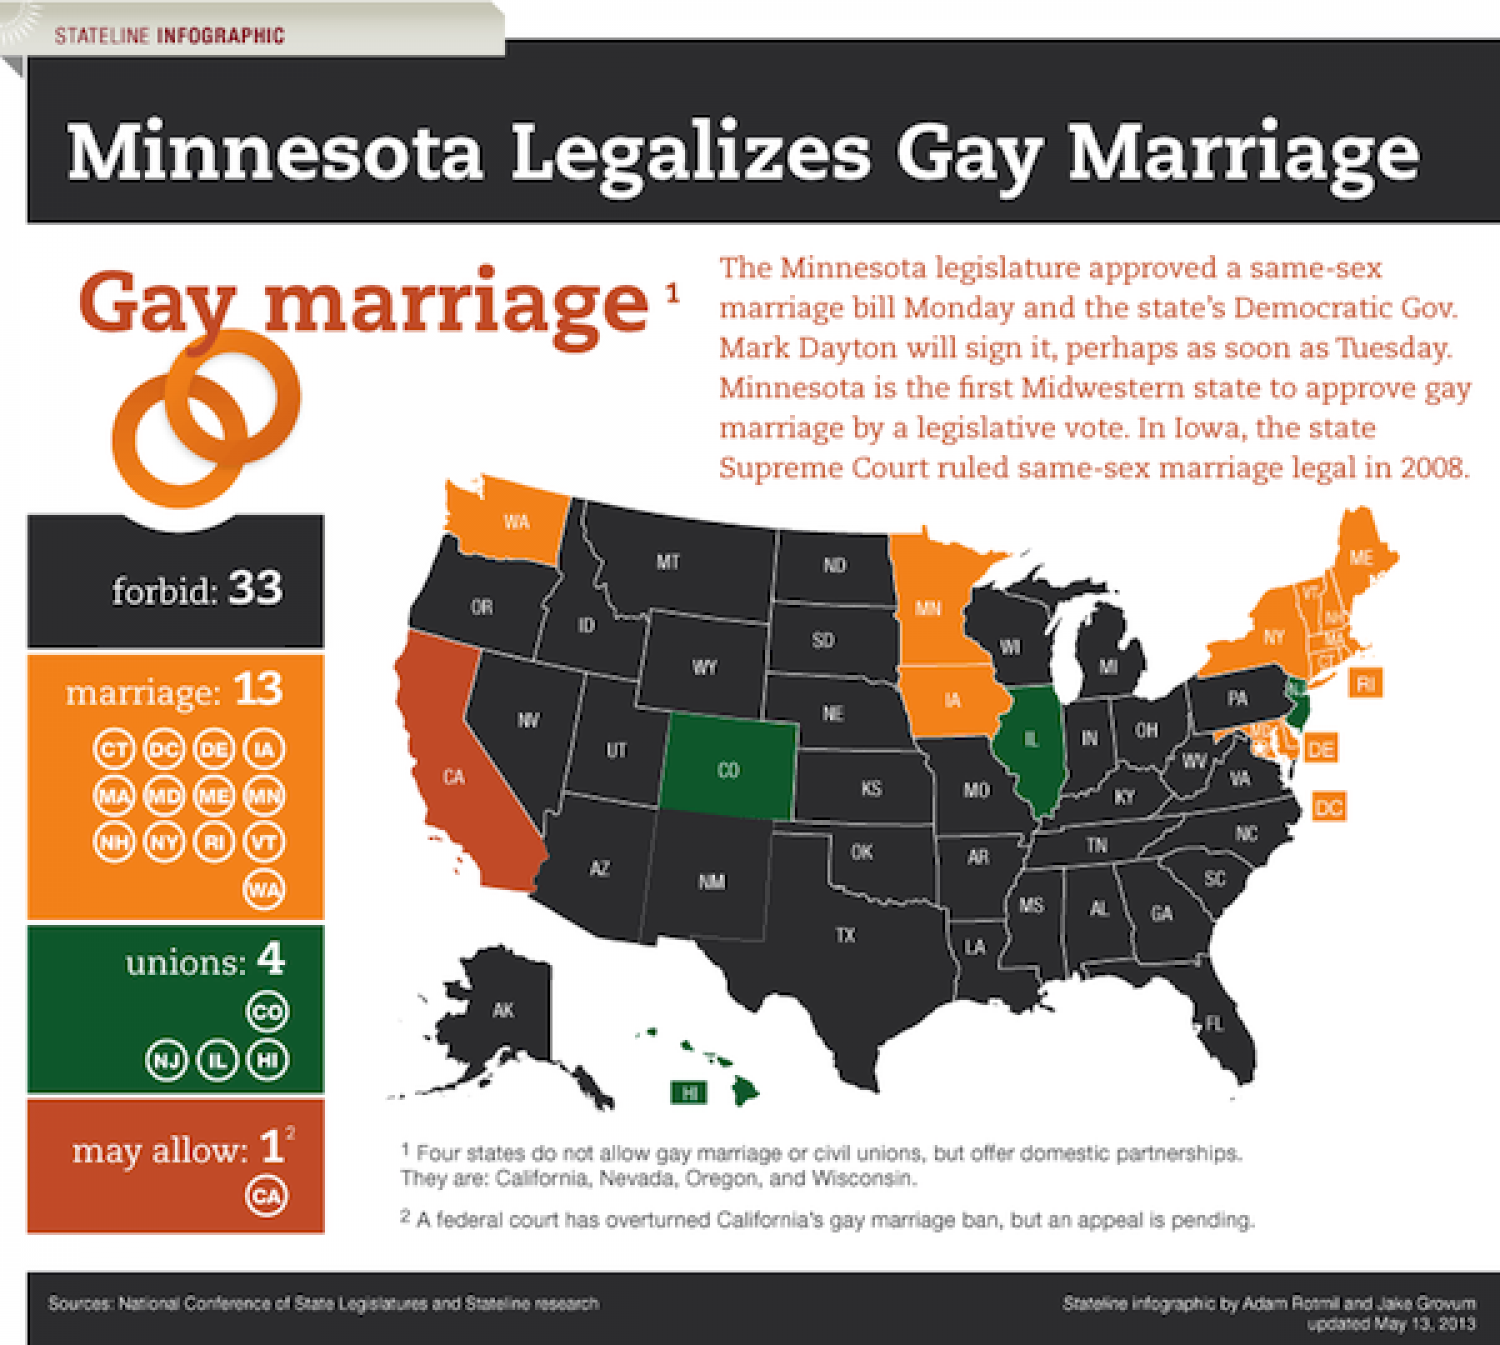 Minnesota Legalizes Gay Marriage Infographic